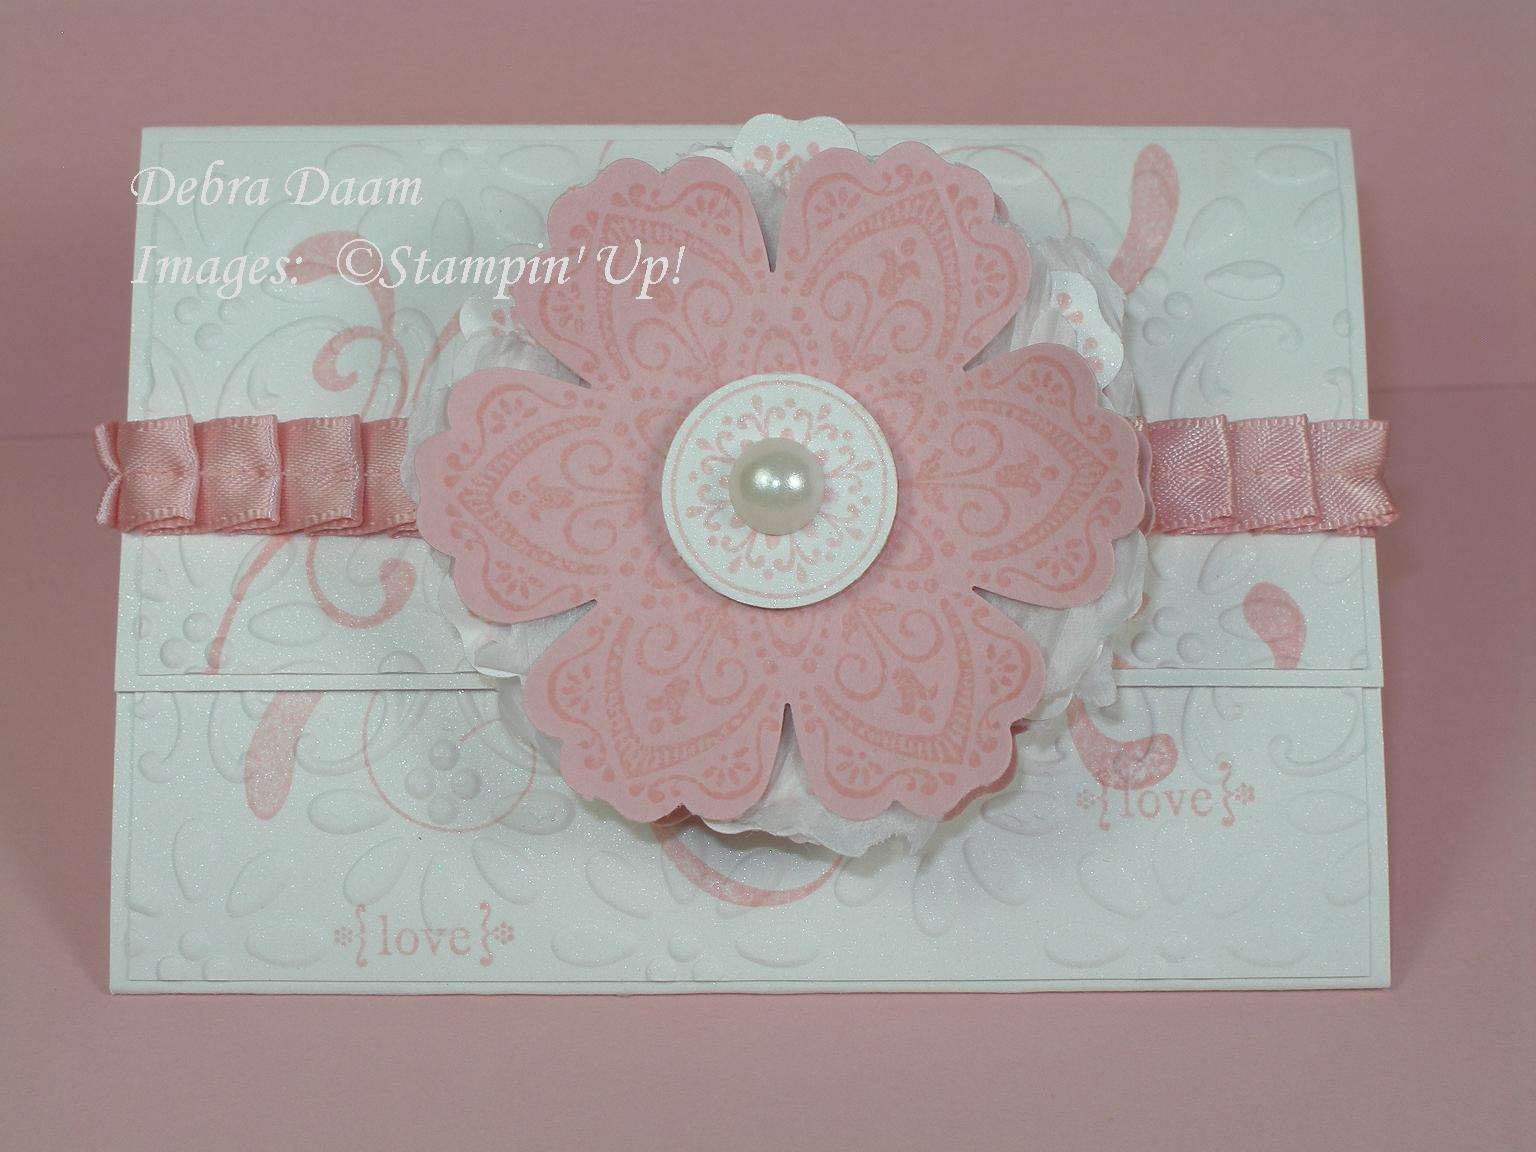 Wedding Shower Gift Card Holders : Debras Stamp Life: Wedding Shower Gift Card Holder